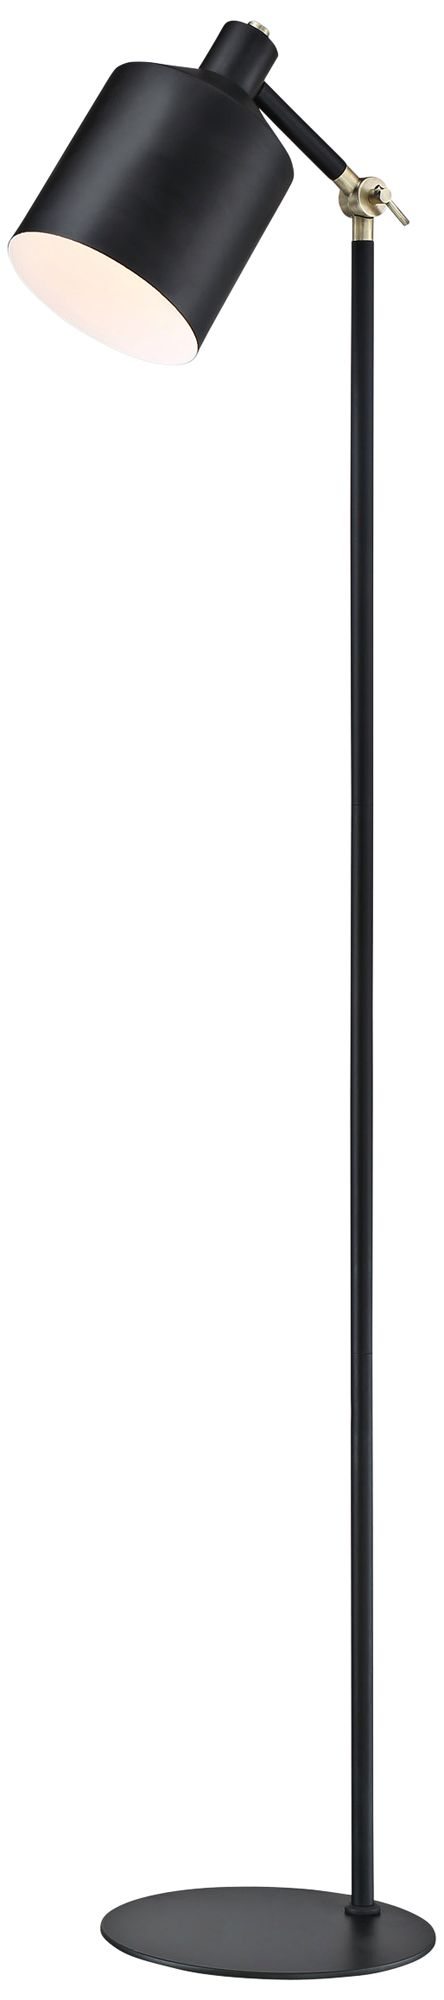 Lite Source Macall Black Metal Floor Lamp